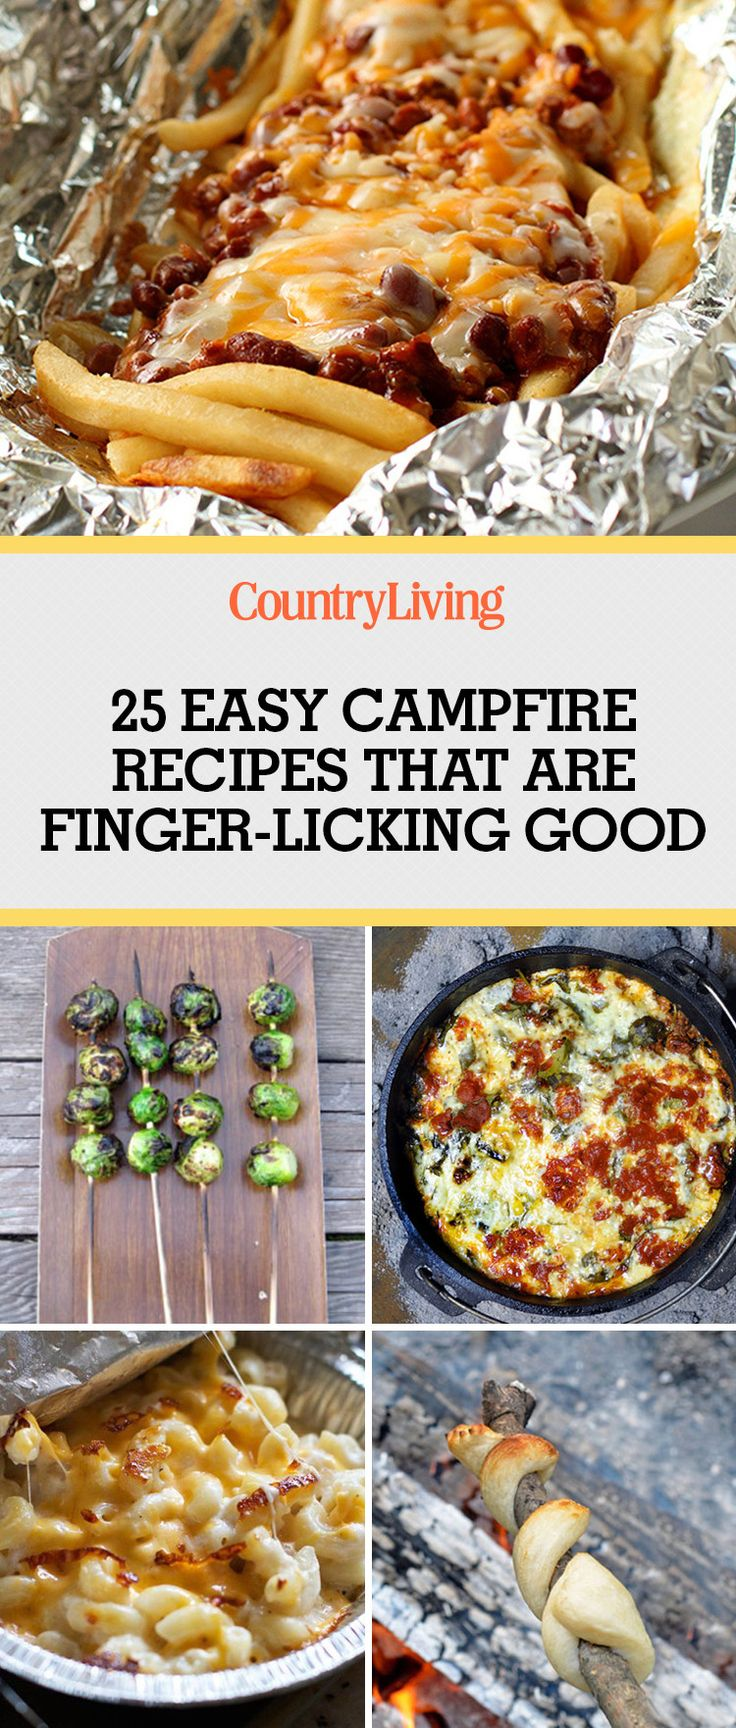 Save these easy recipes and make your next campfire one to remember.